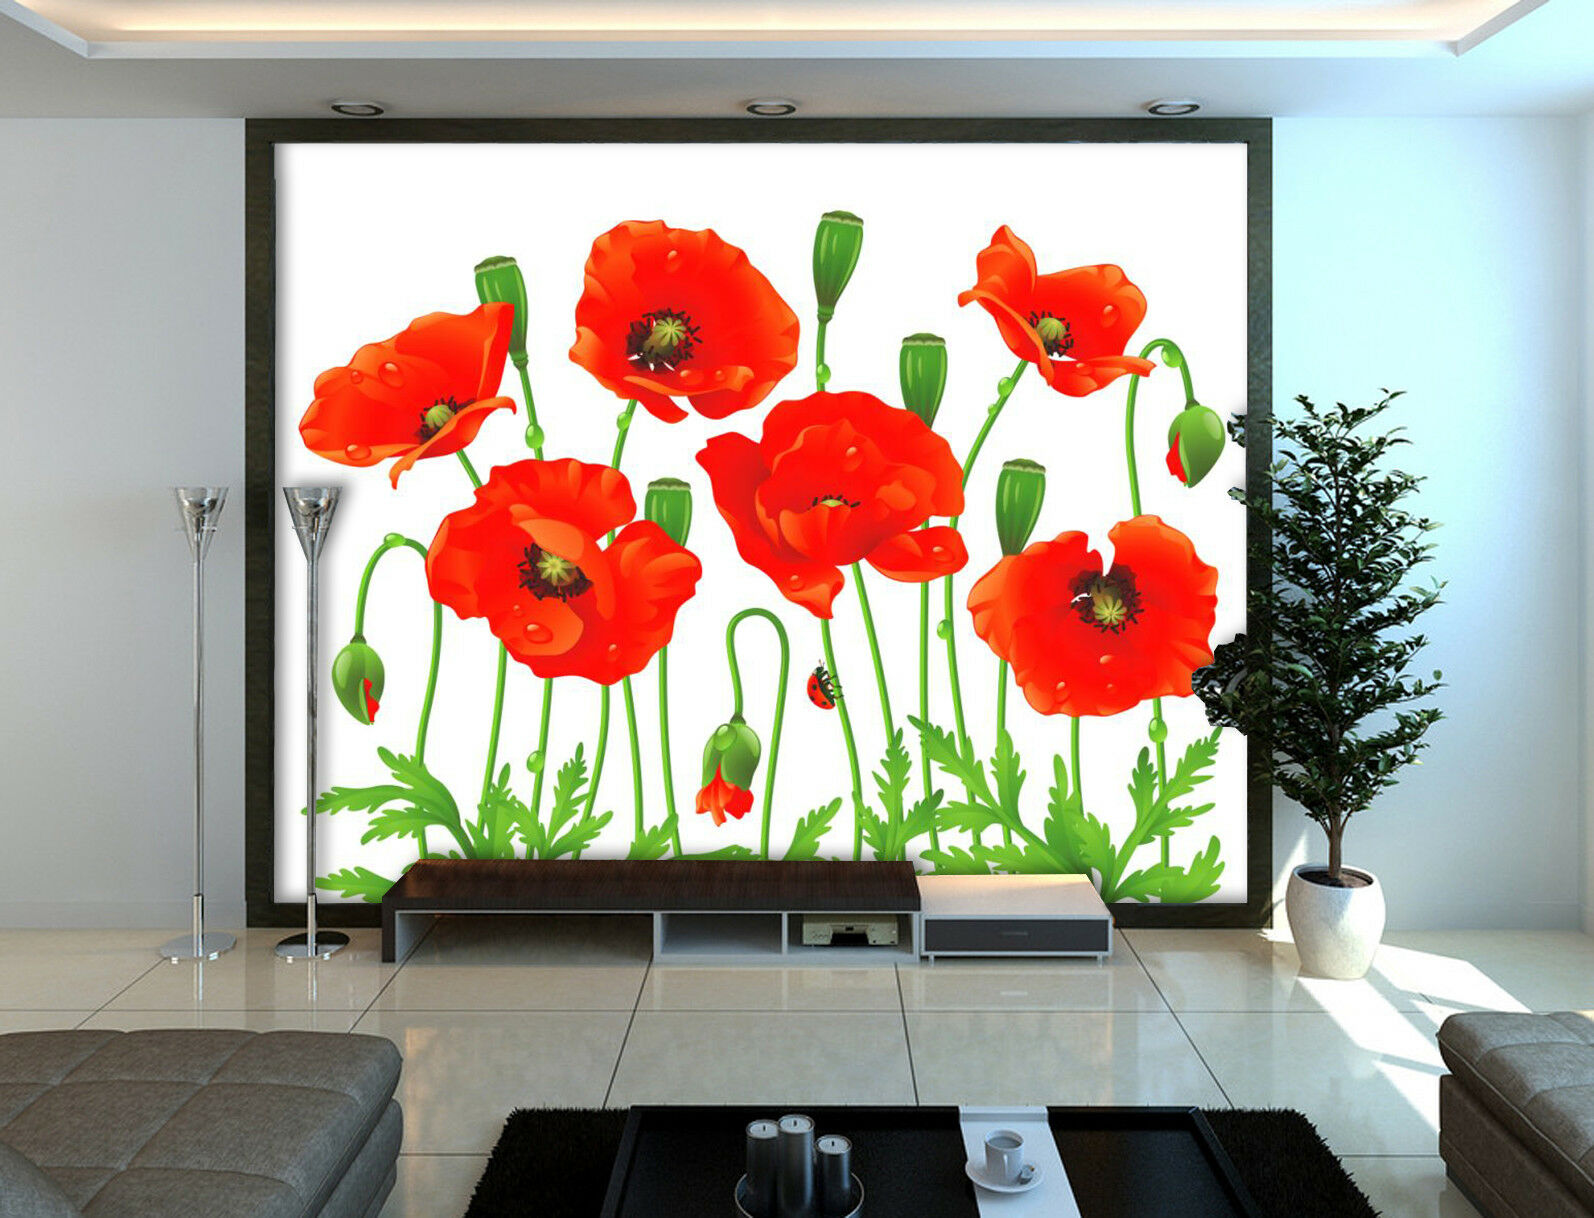 3D Flower Grass 7432 Wallpaper Mural Wall Print Wall Wallpaper Murals US Summer